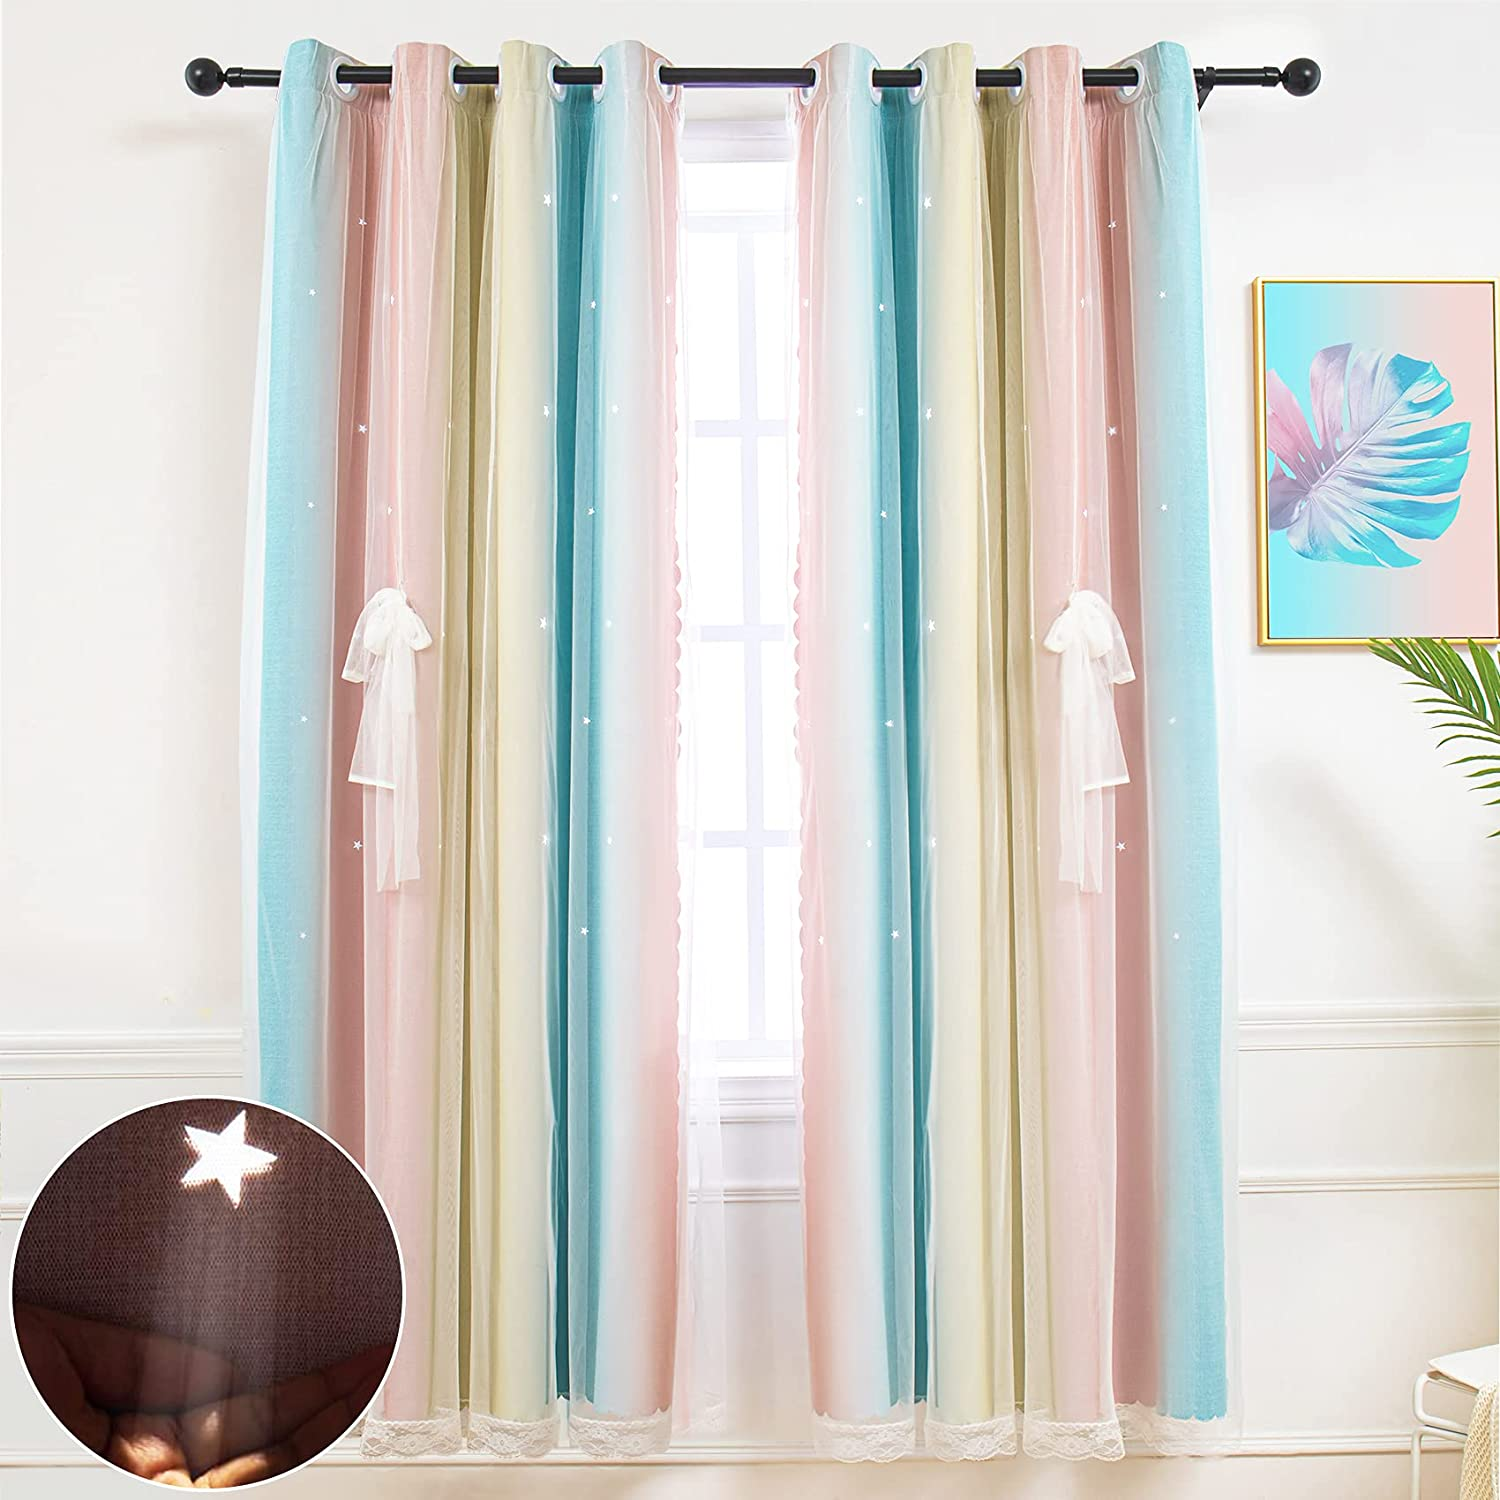 Hughapy Star Curtains for Girls Bedroom Kids Room Decor Light Blocking Voile Overlay Princess Star Hollowed Curtain Colorful Striped Layered Window Curtain, 1 Panel ( 52W x 95L, Pink / Blue)